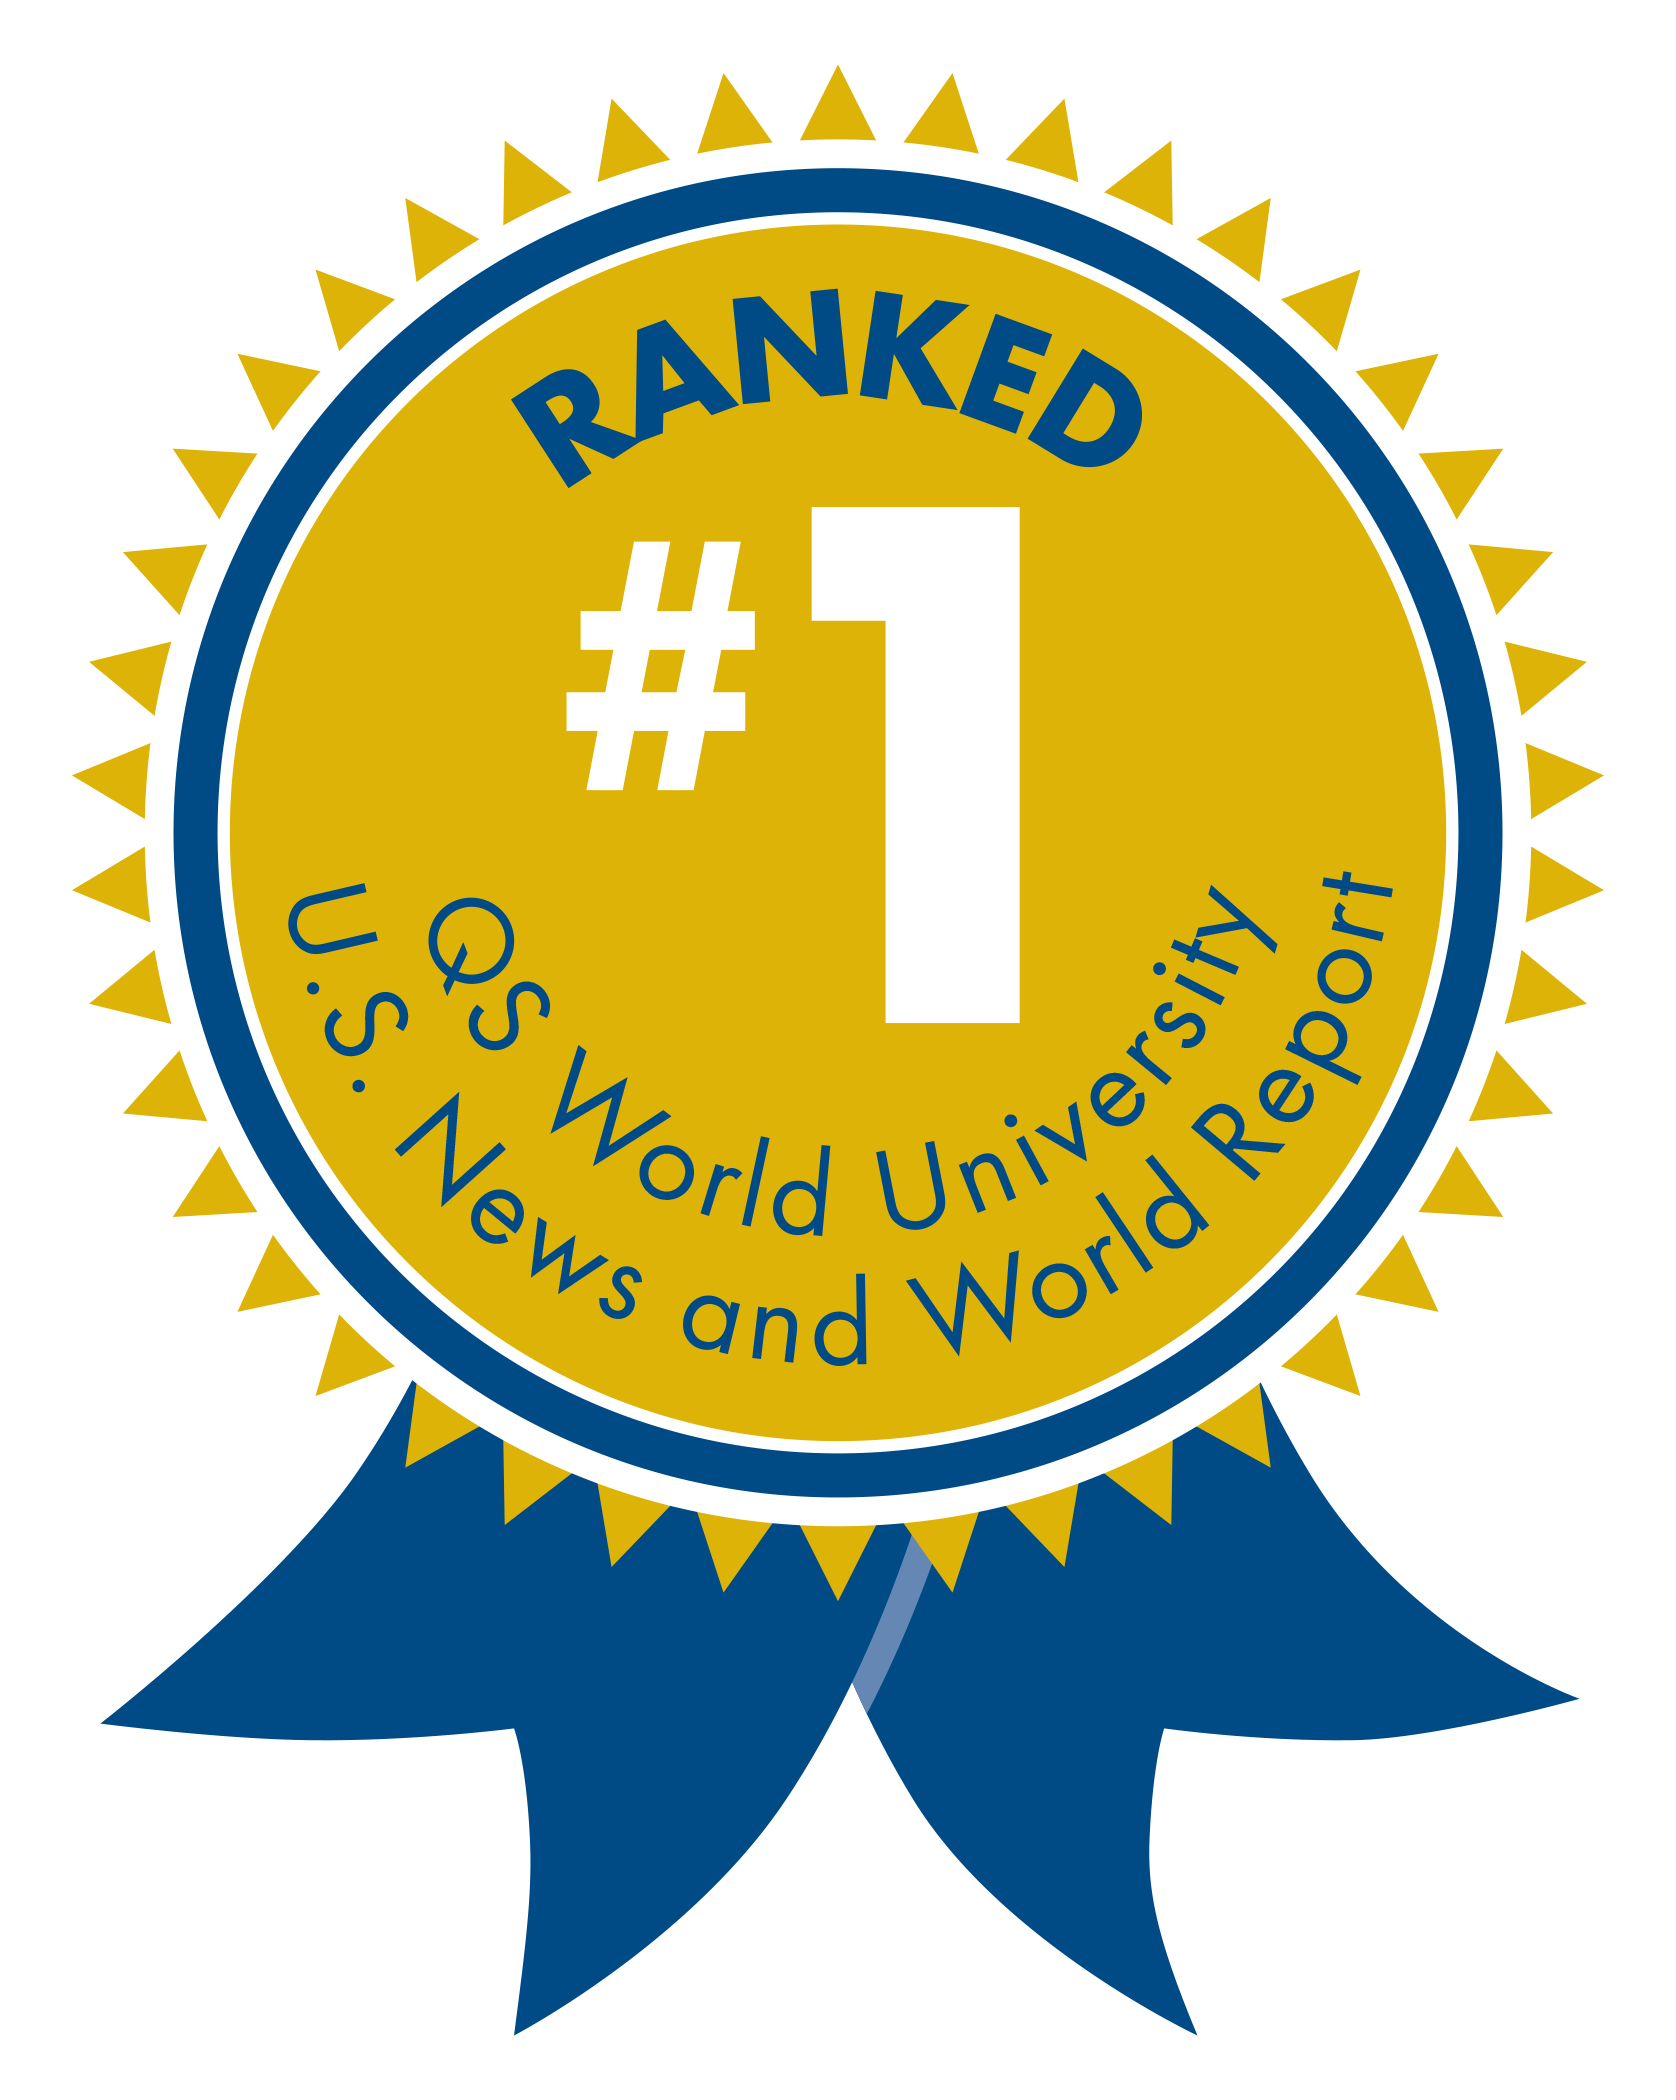 #1 Vet School in the world